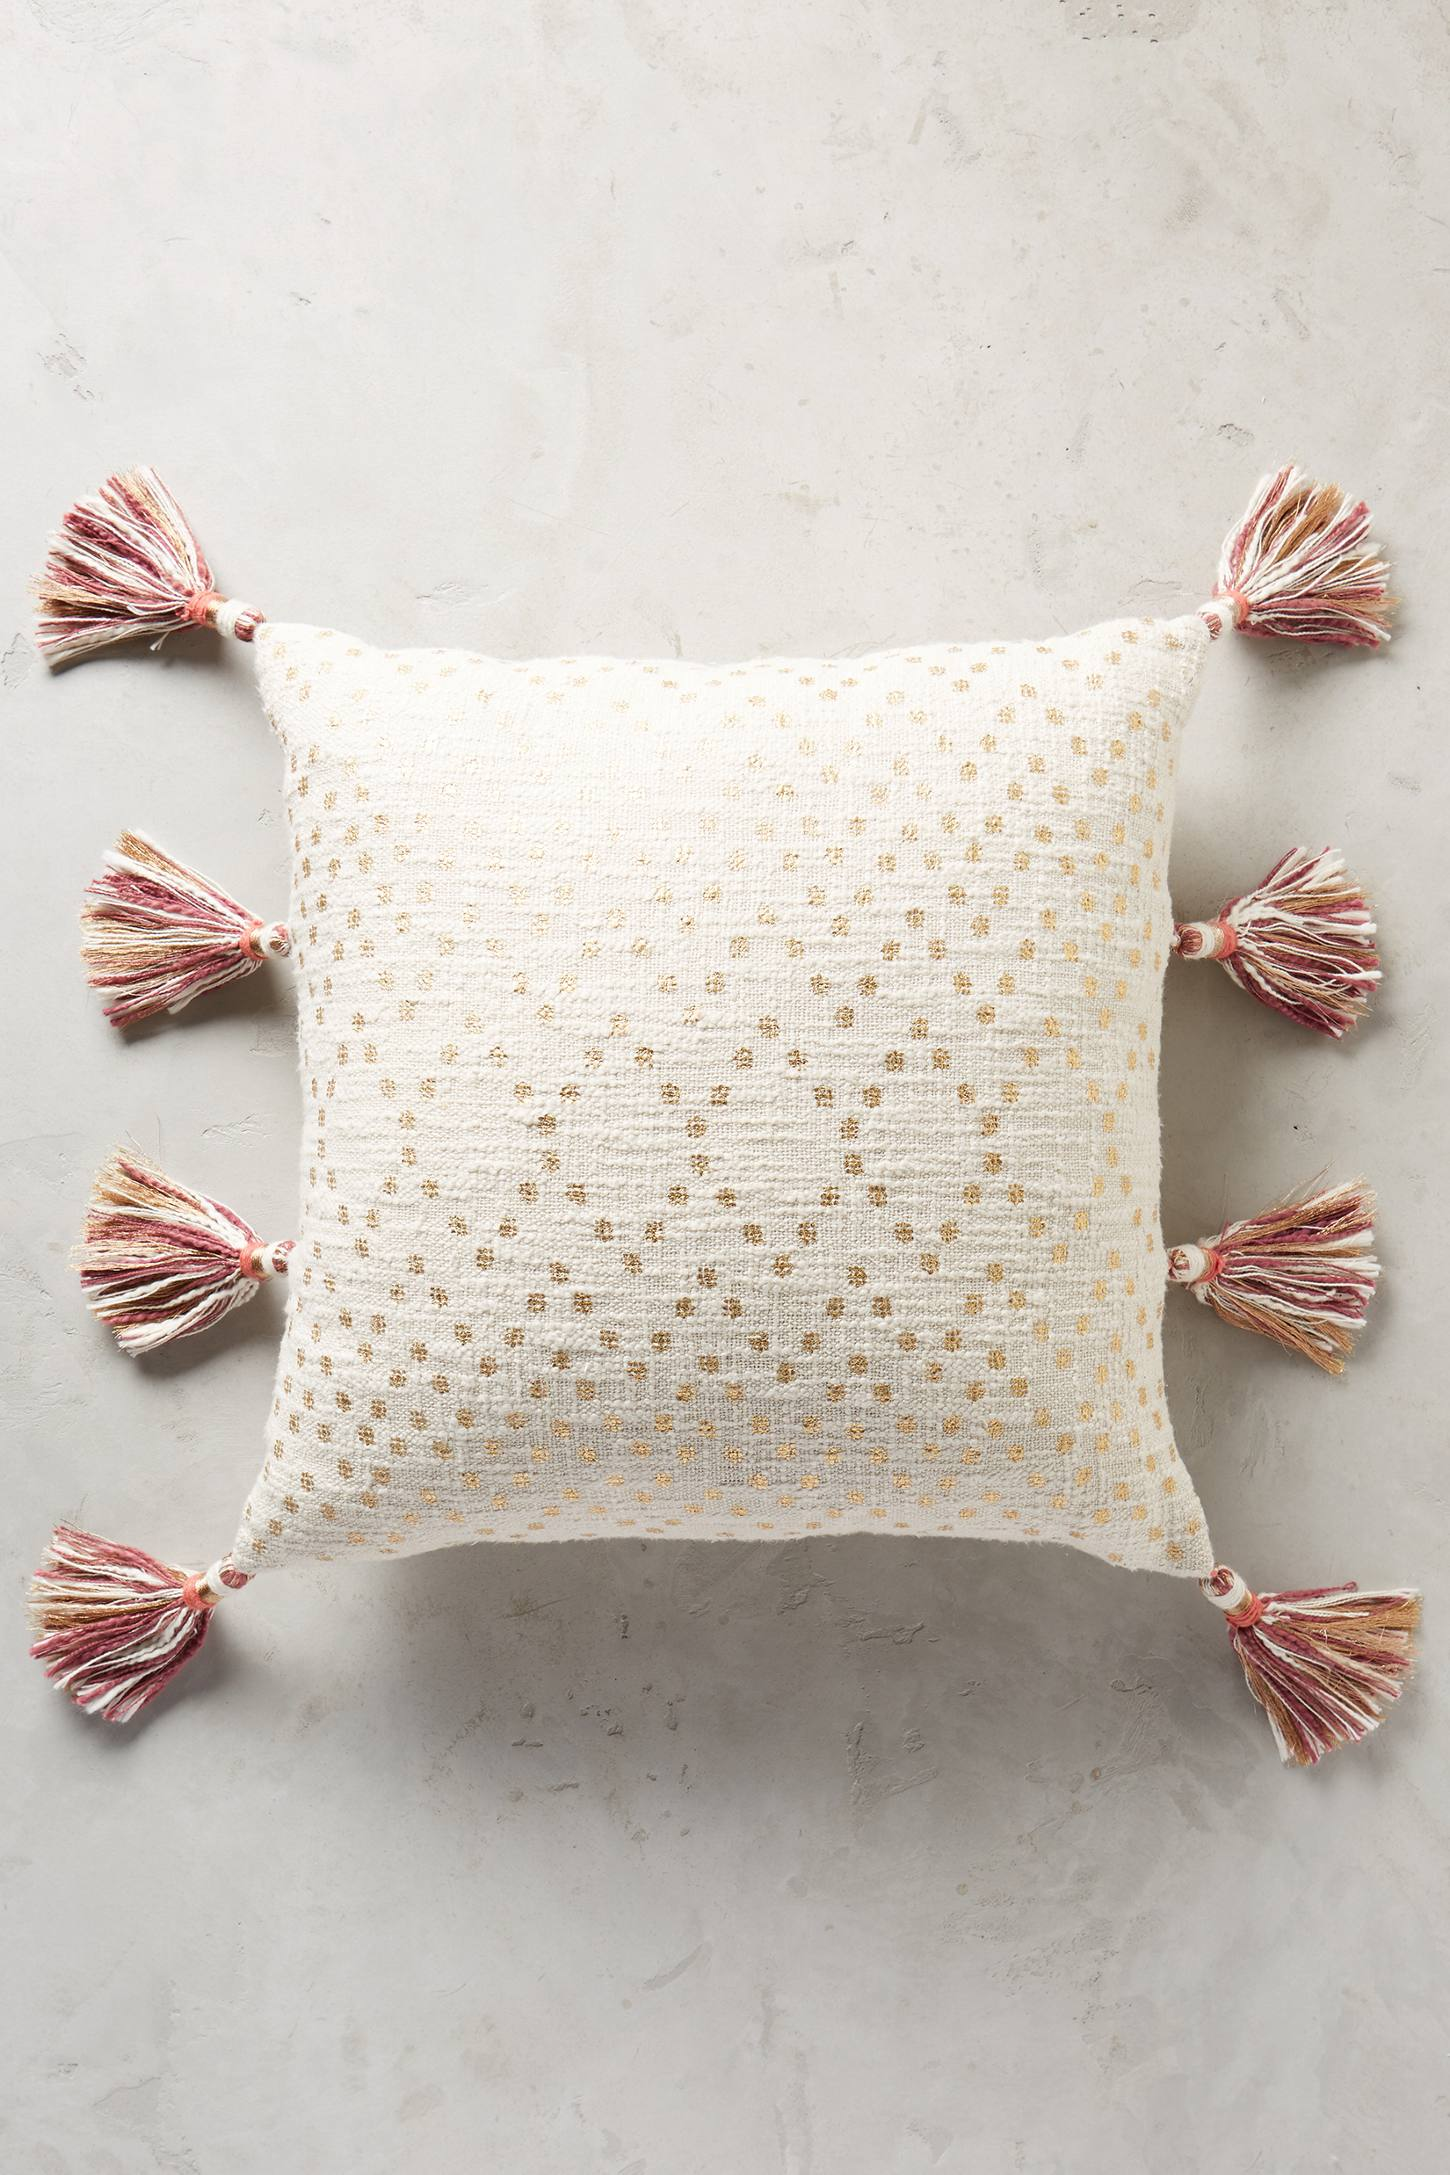 Slide View: 8: Tasseled Pointilliste Pillow